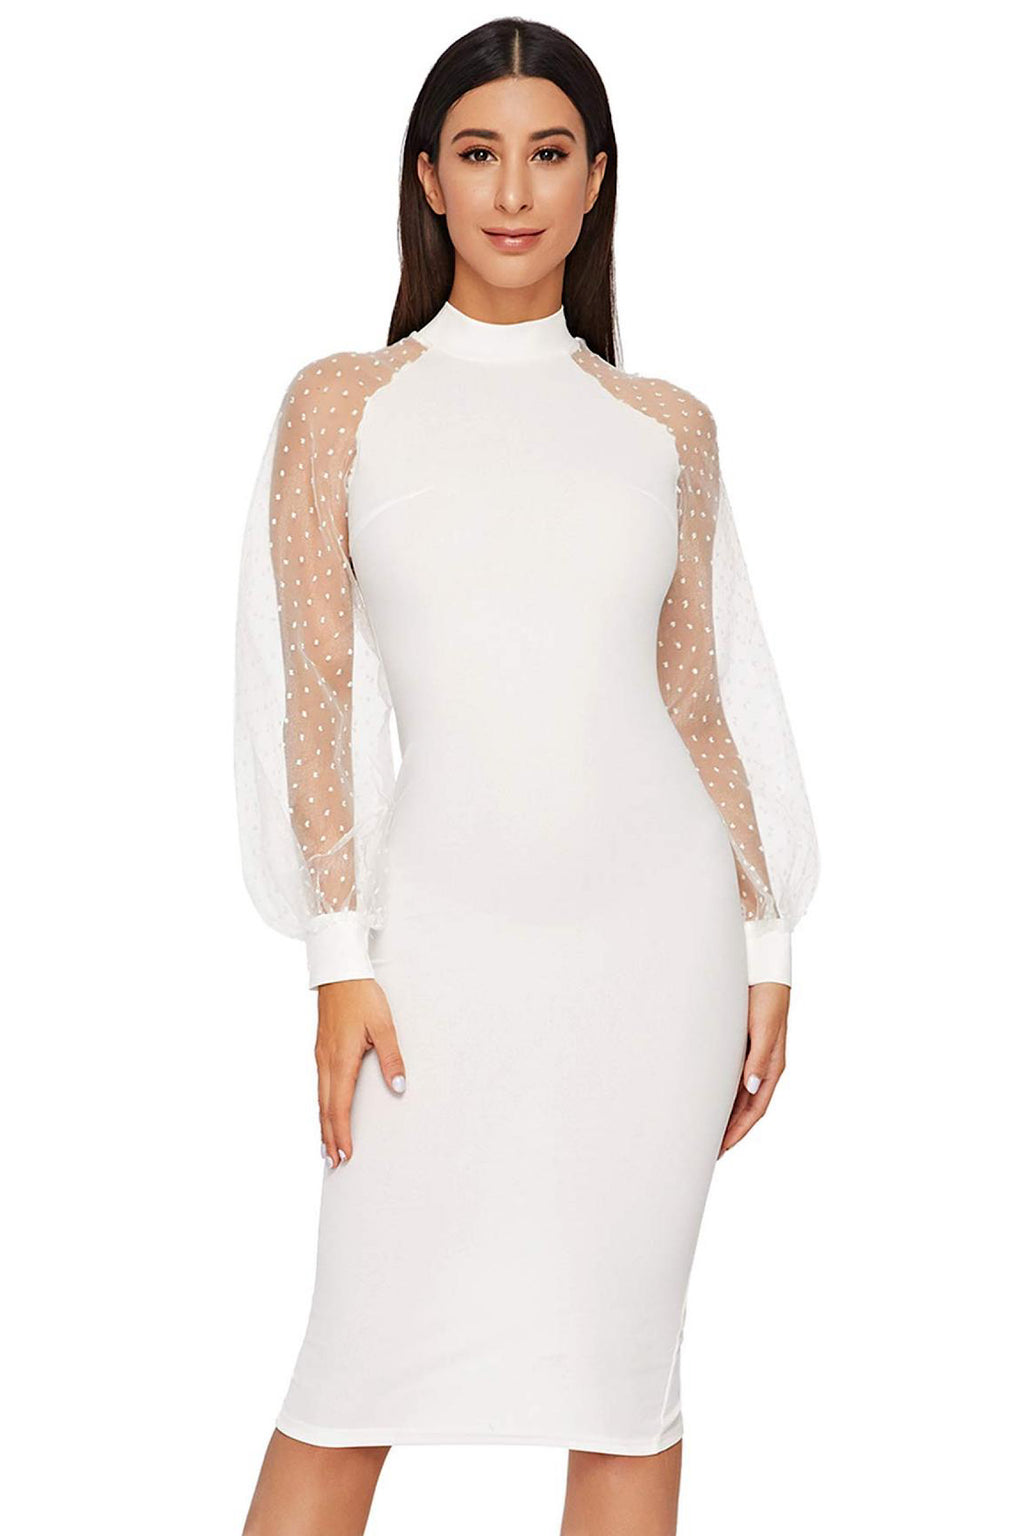 Bethany Mock Neck Mesh Long Sleeves Midi Dress in Off White